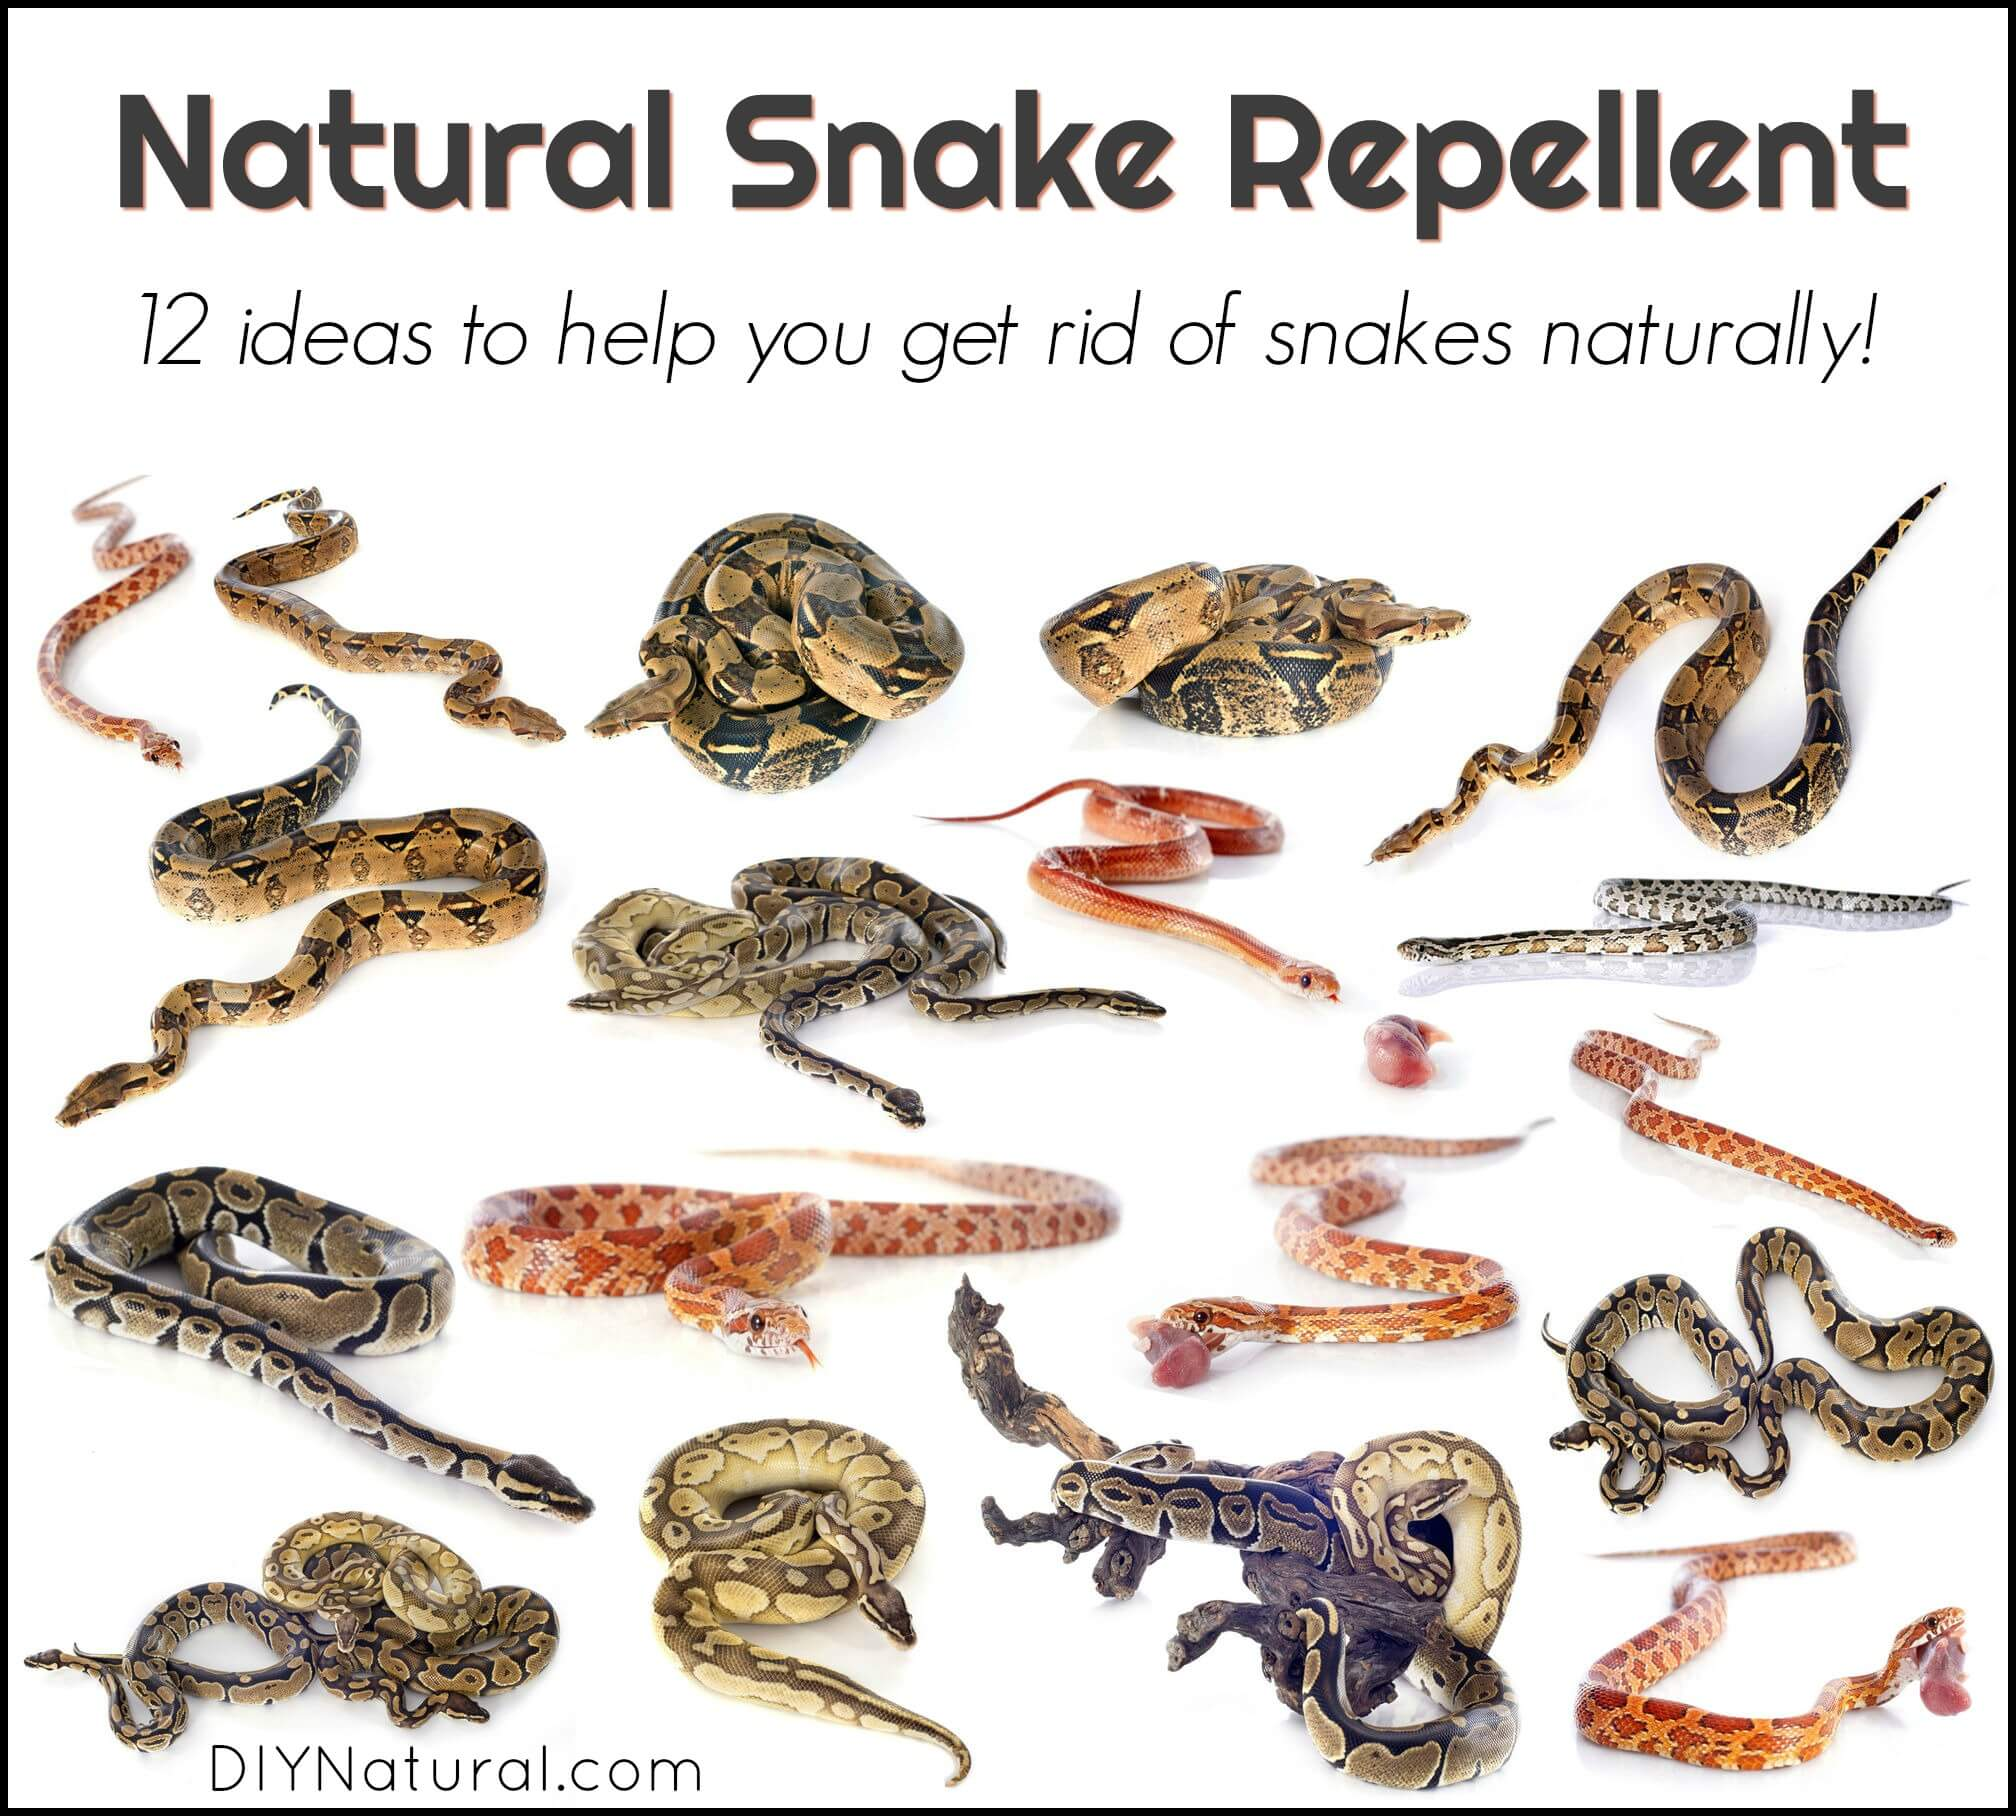 12 Natural Snake Repellent Ideas To Get Rid of Snakes